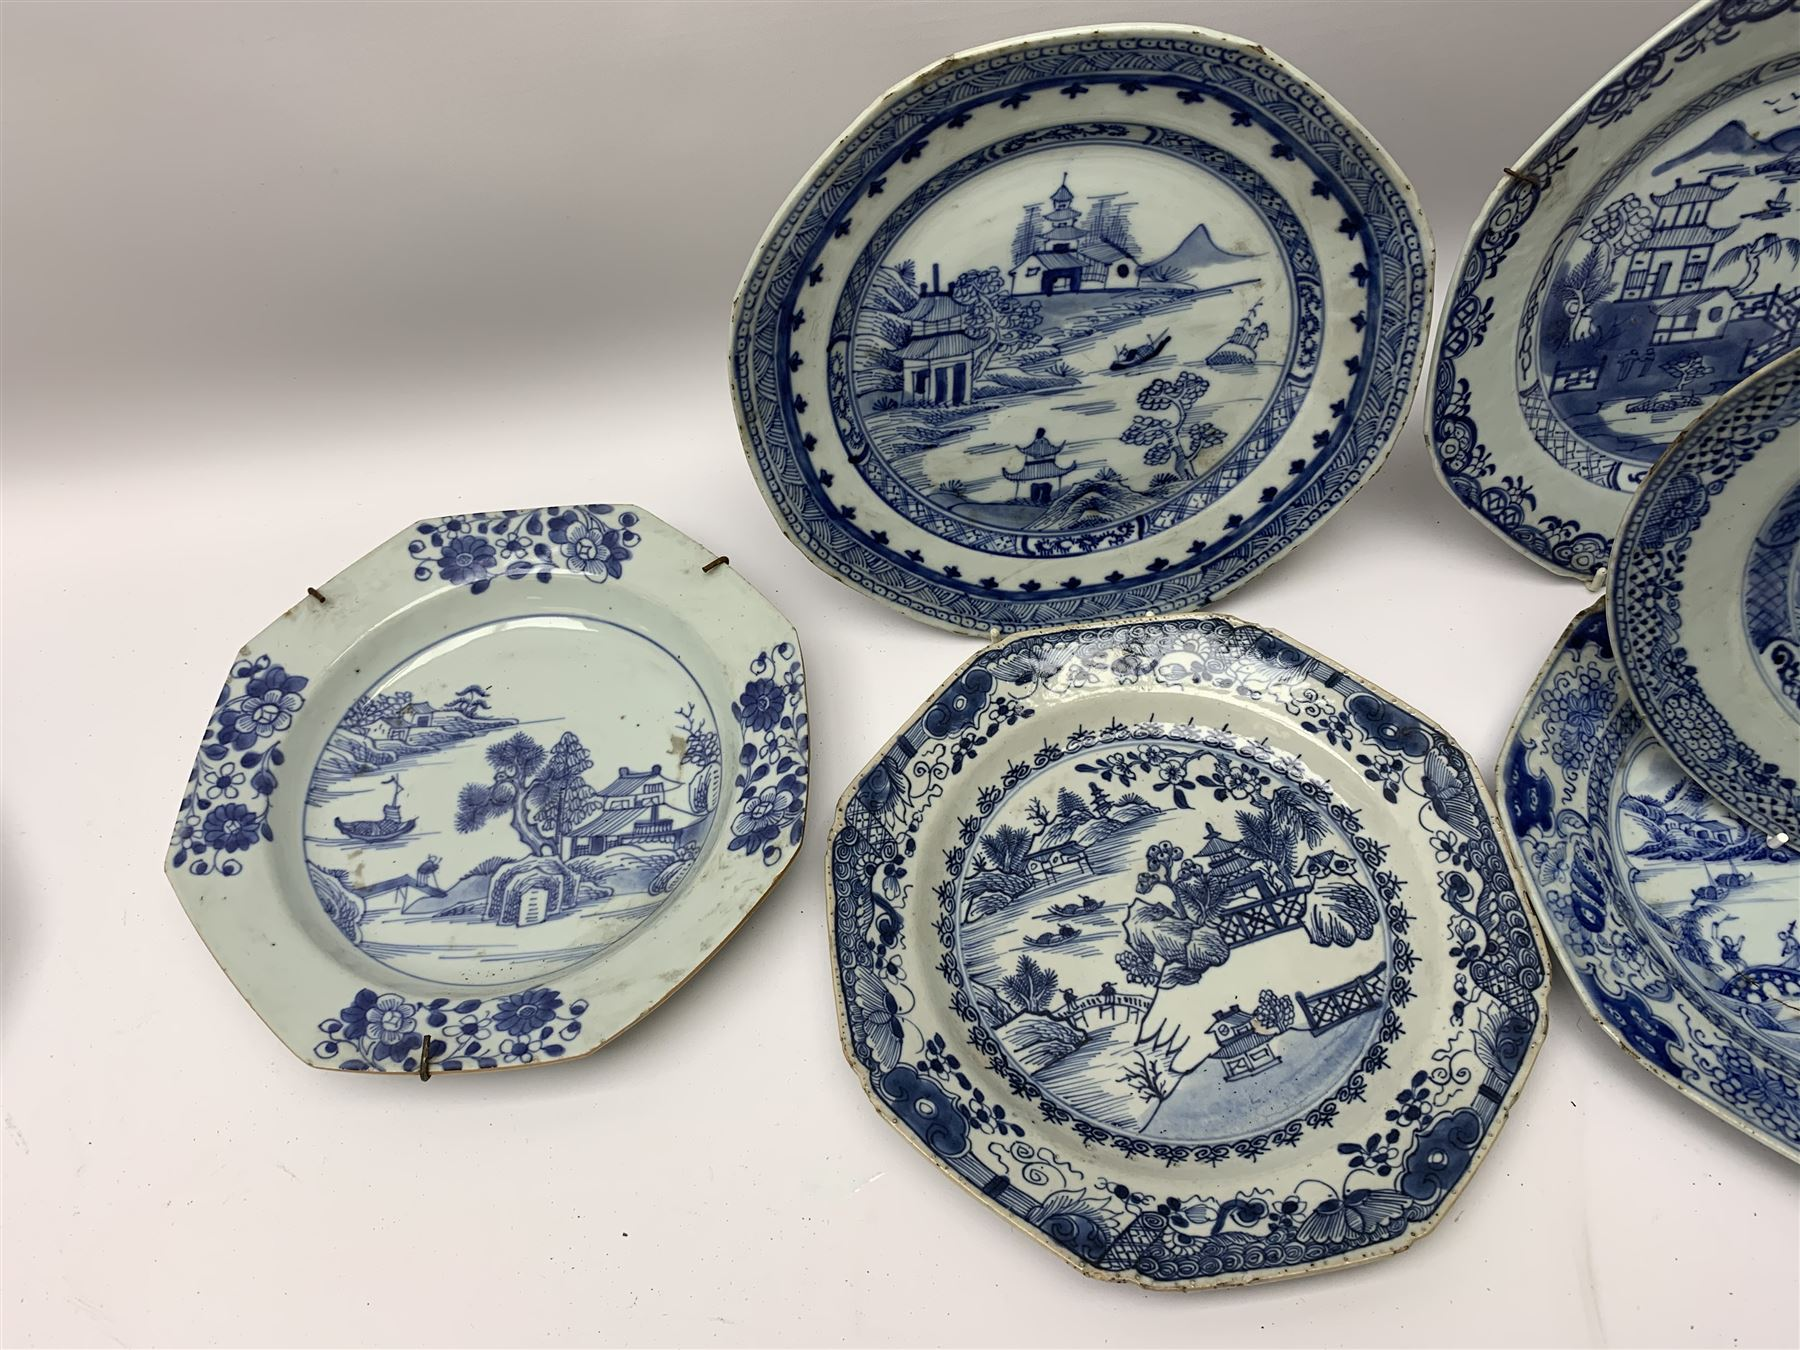 Late 18th/early 19th century Chinese export blue and white porcelain - Image 4 of 5